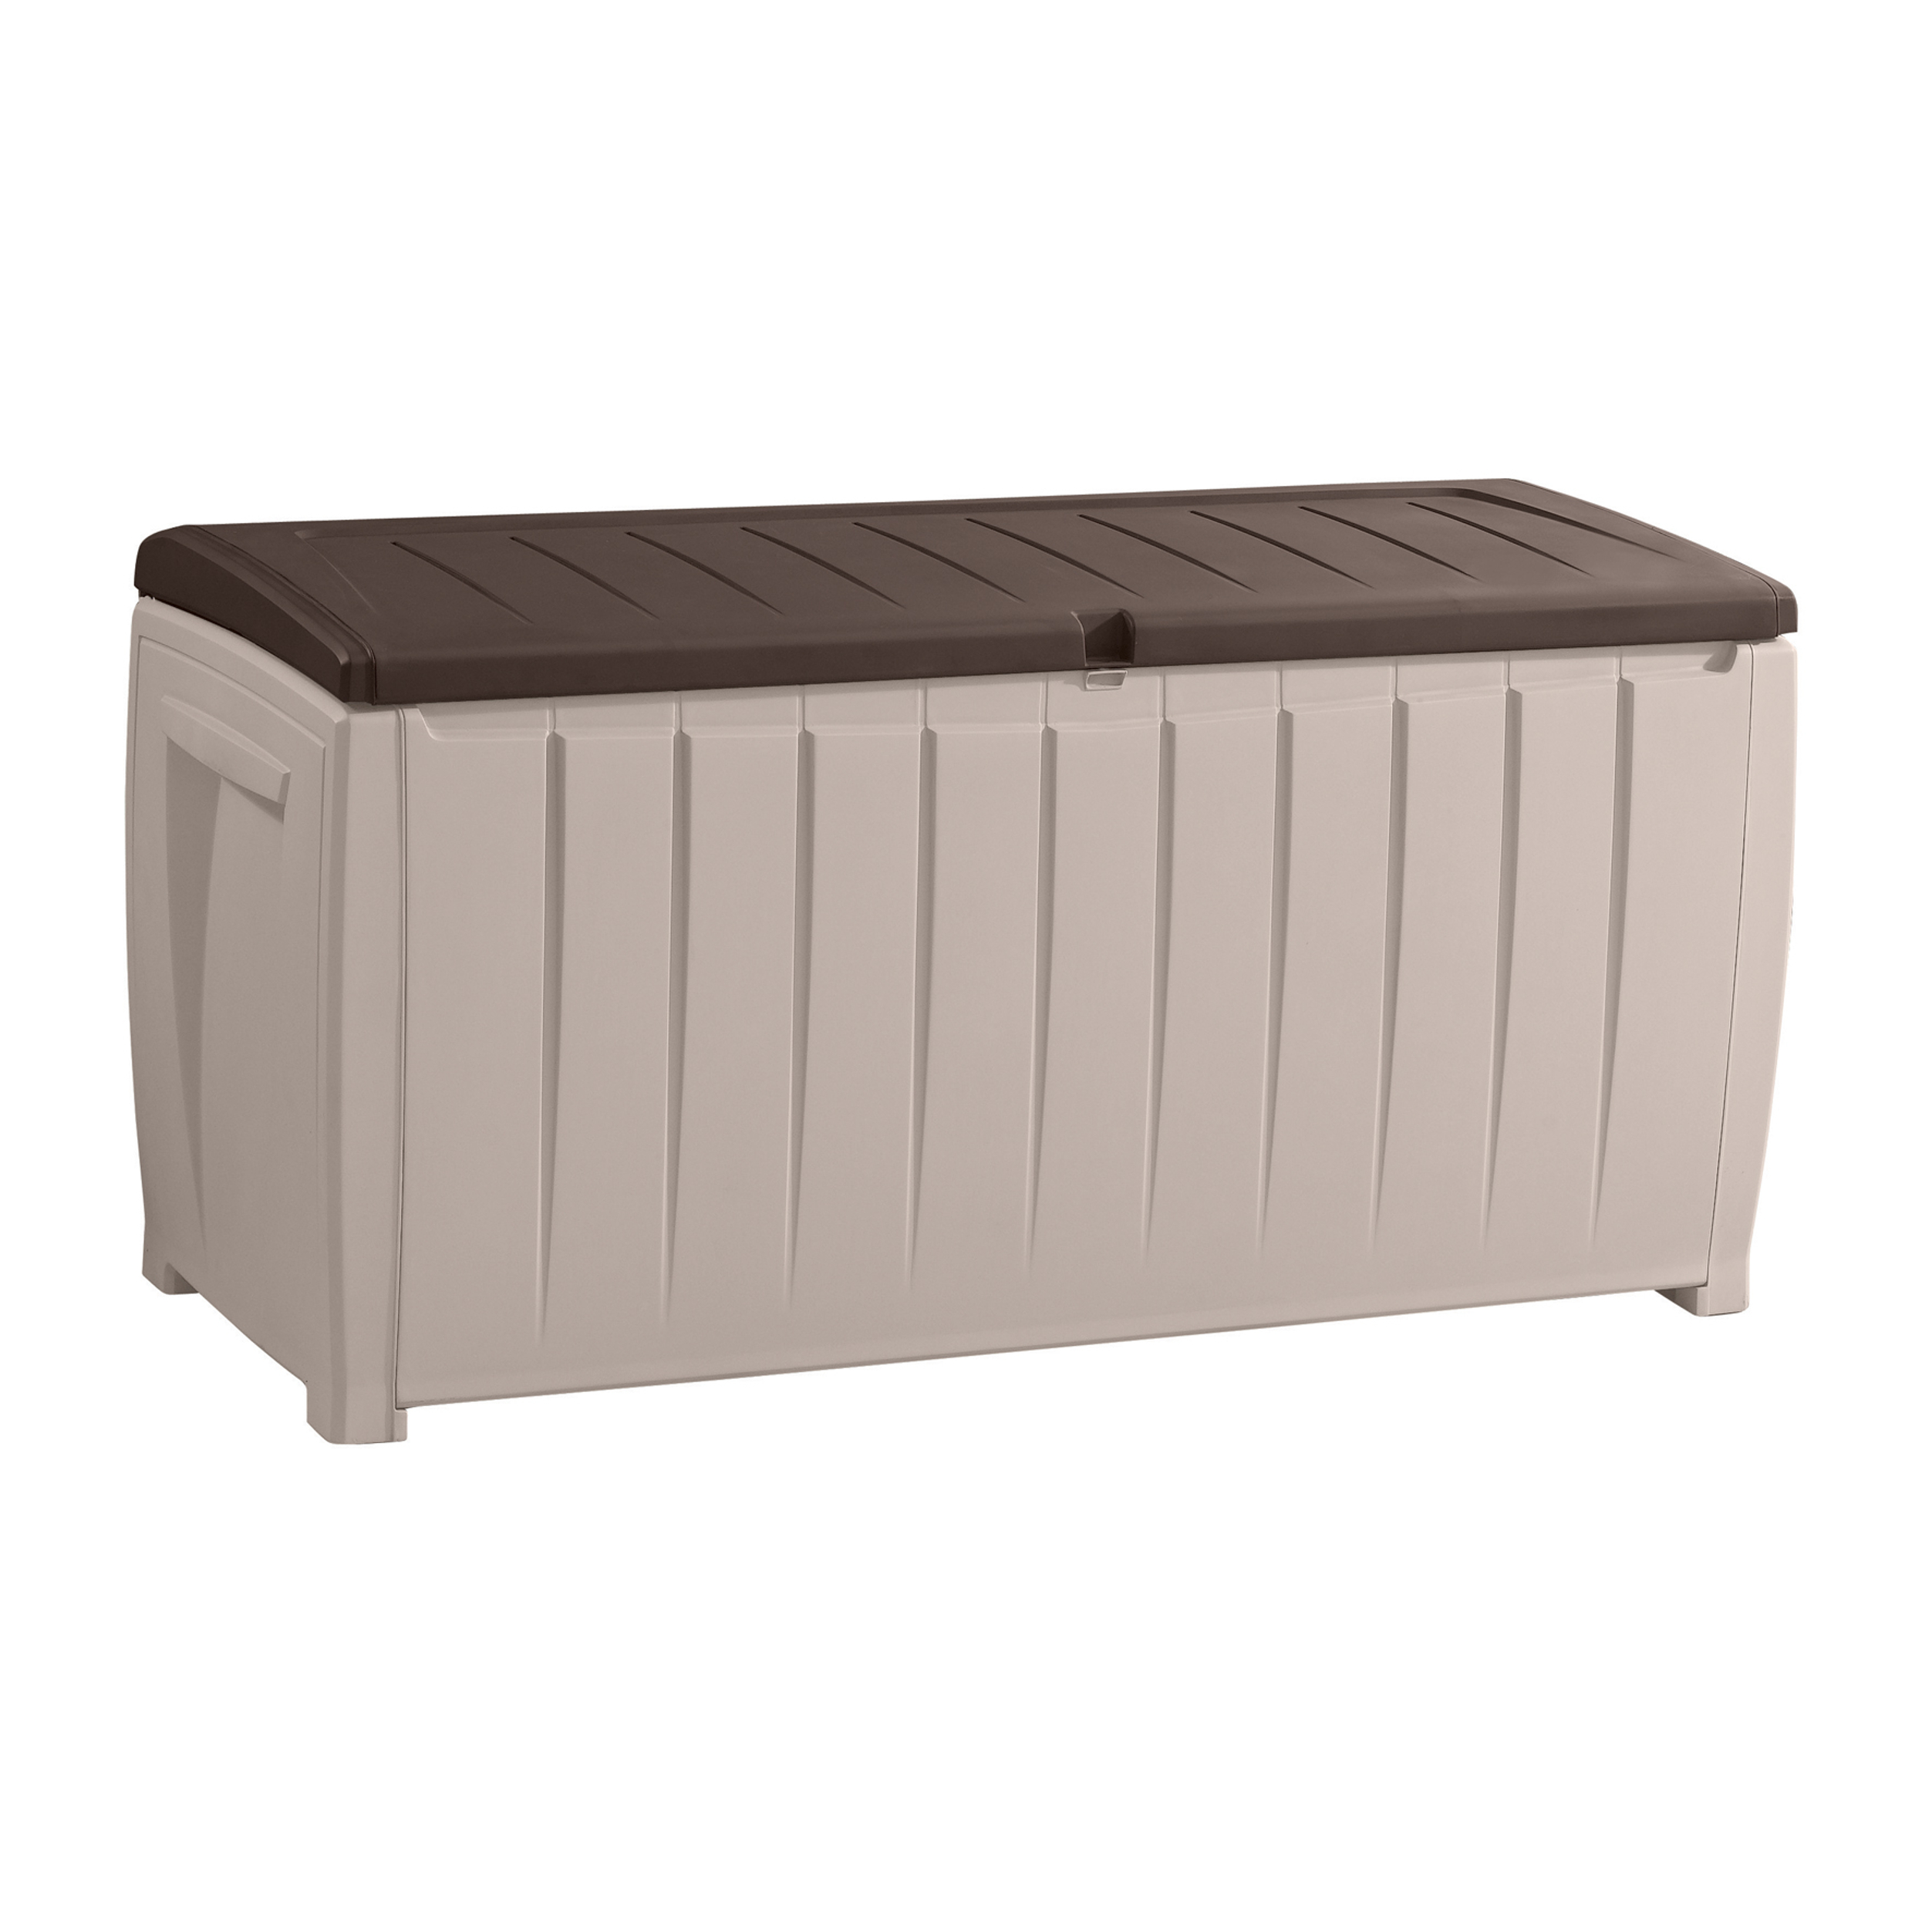 Garten Box 90 Gallon Deck Storage Box Sears